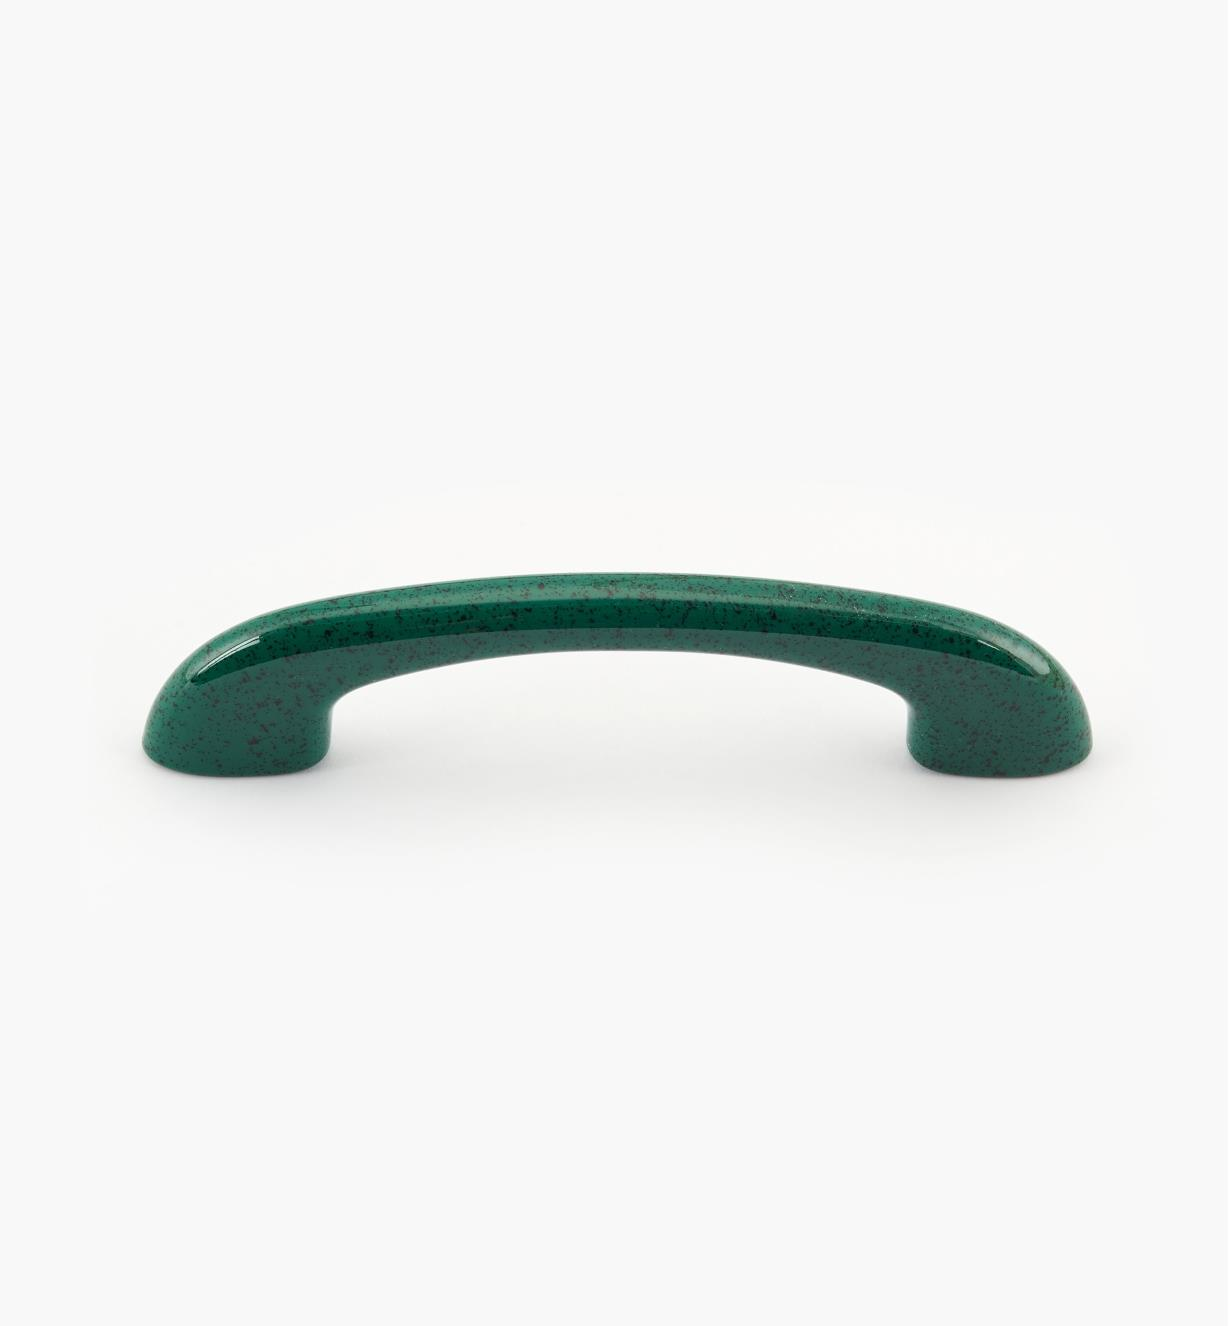 00W3571 - Marbled Green Handle